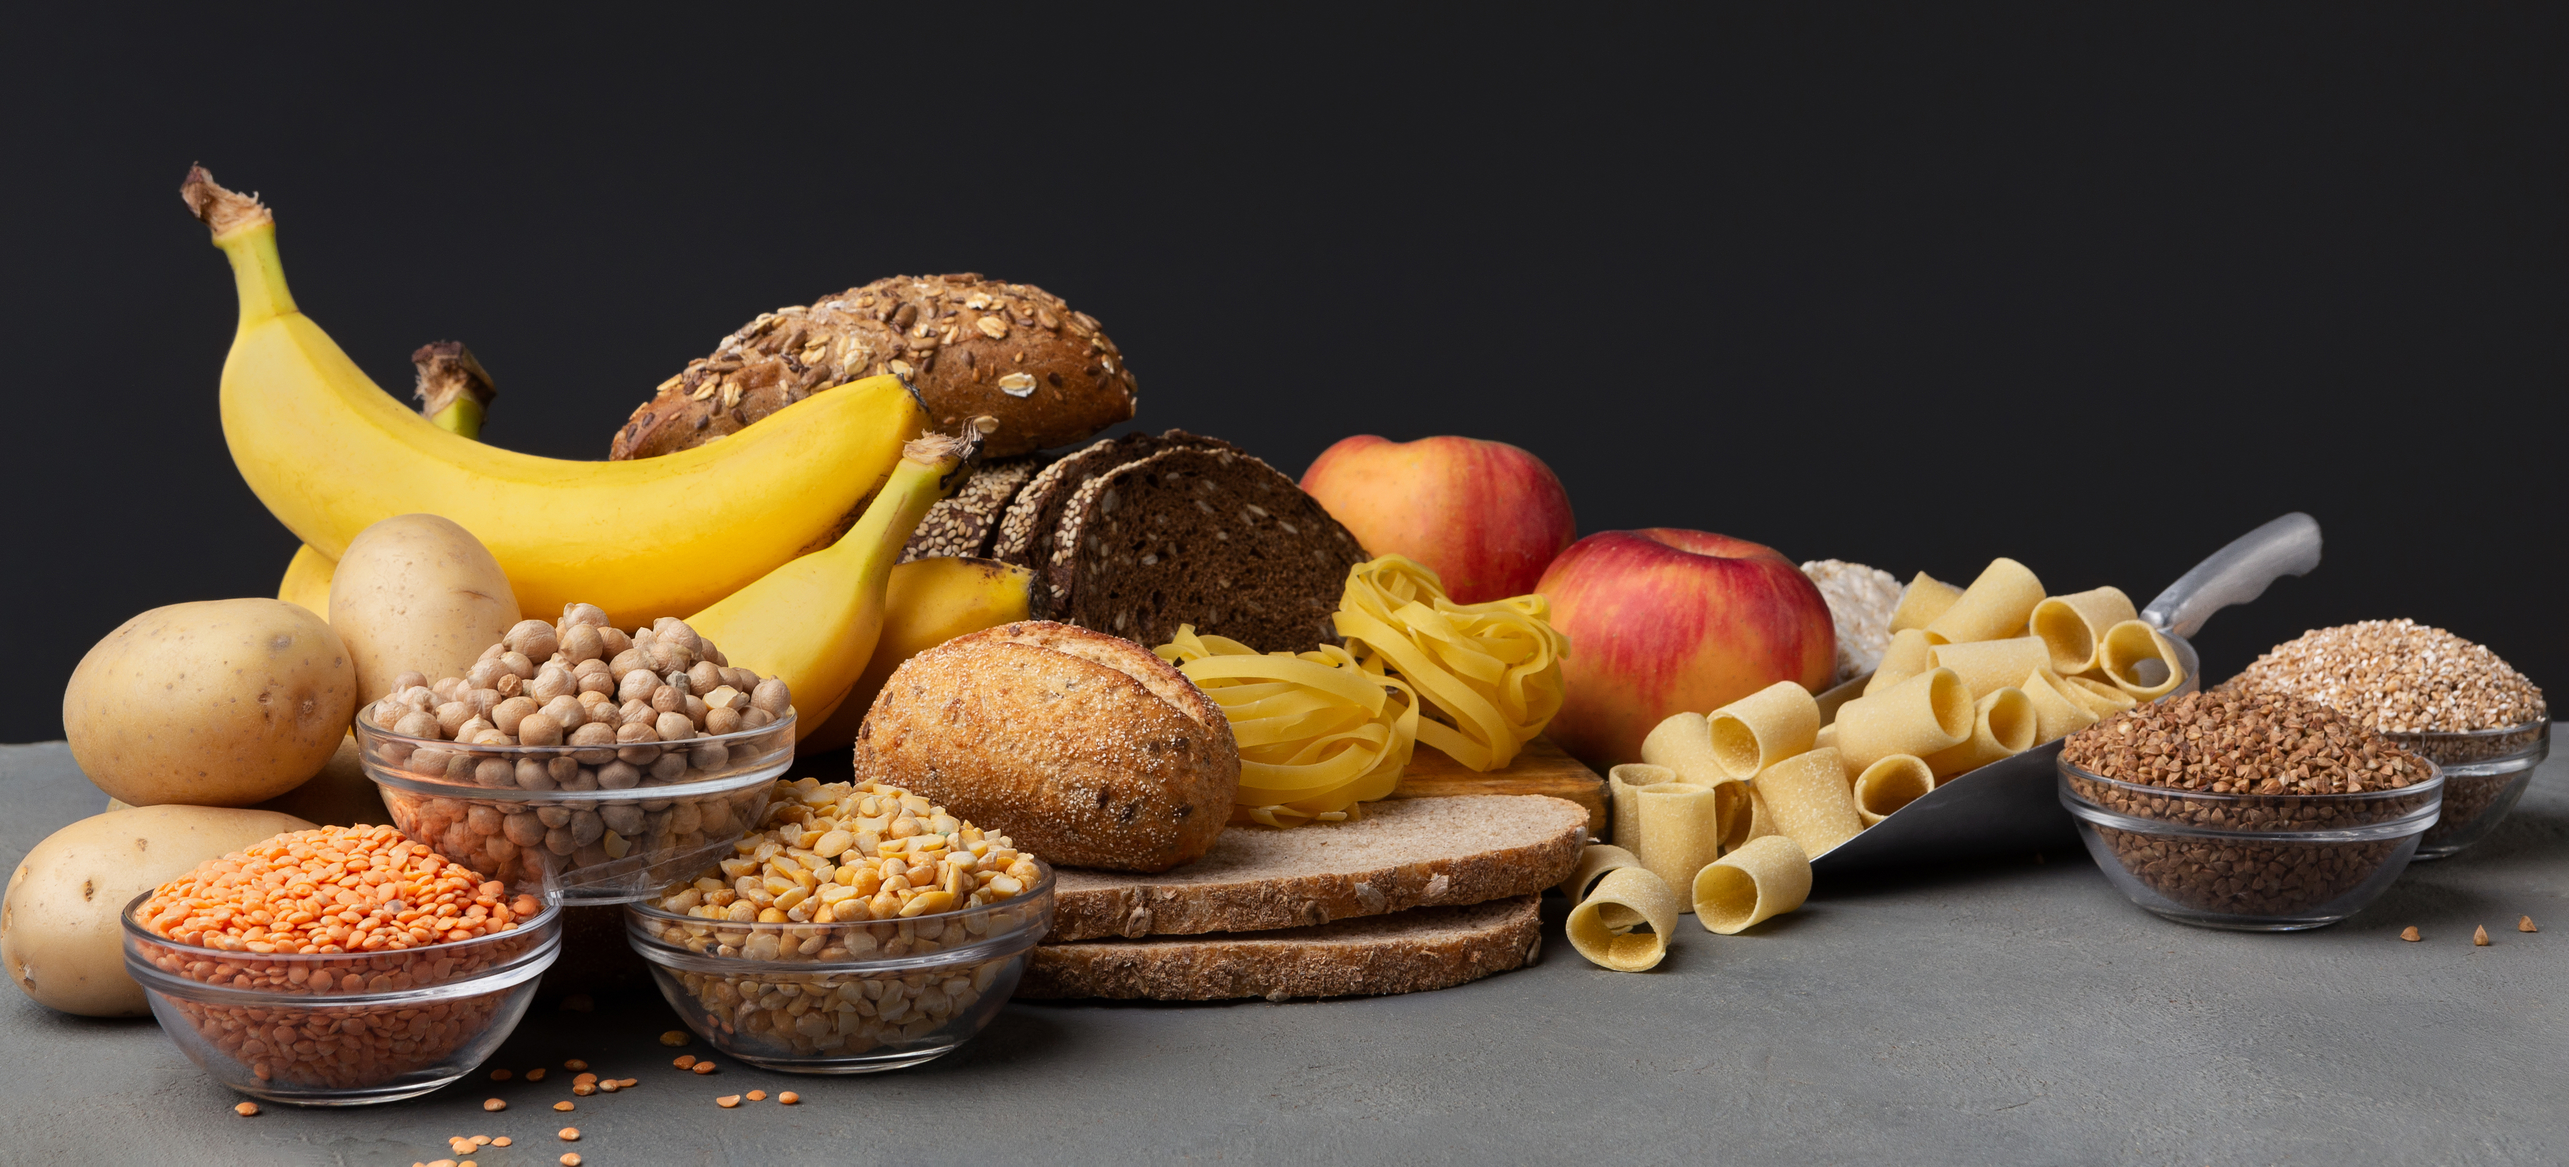 Collection_of_Carbohydrate_rich_foods_on_a_table